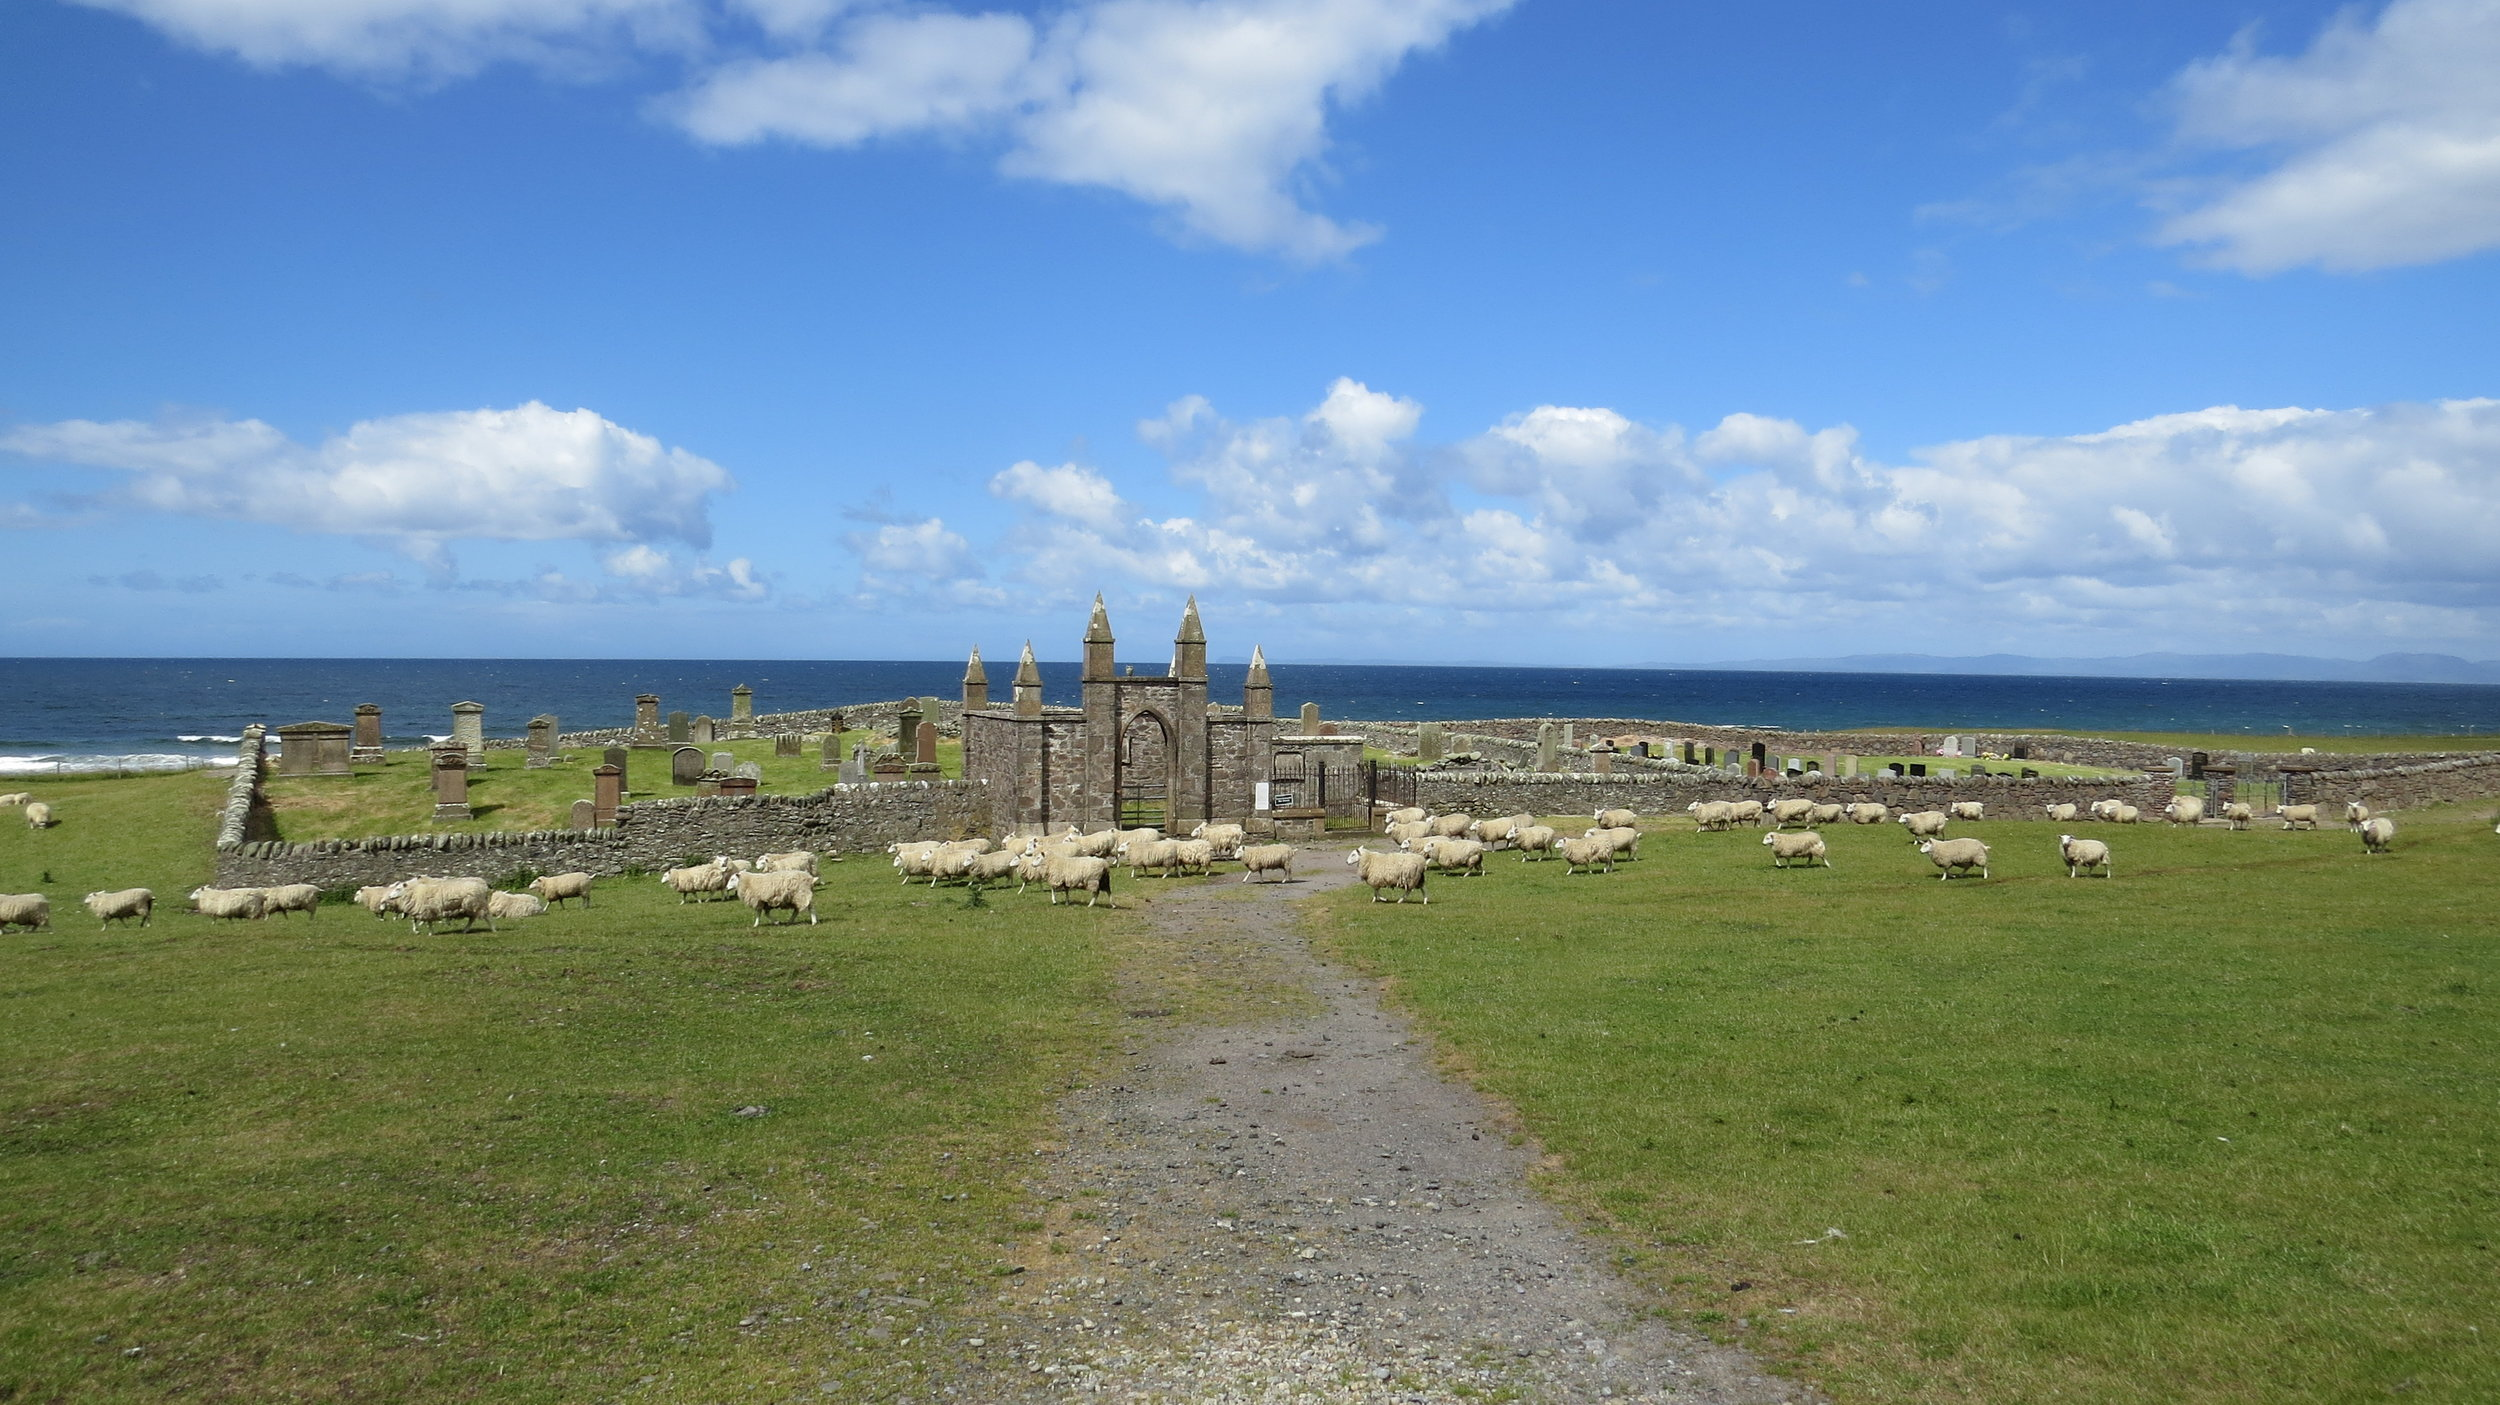 Sheep and Cemetry